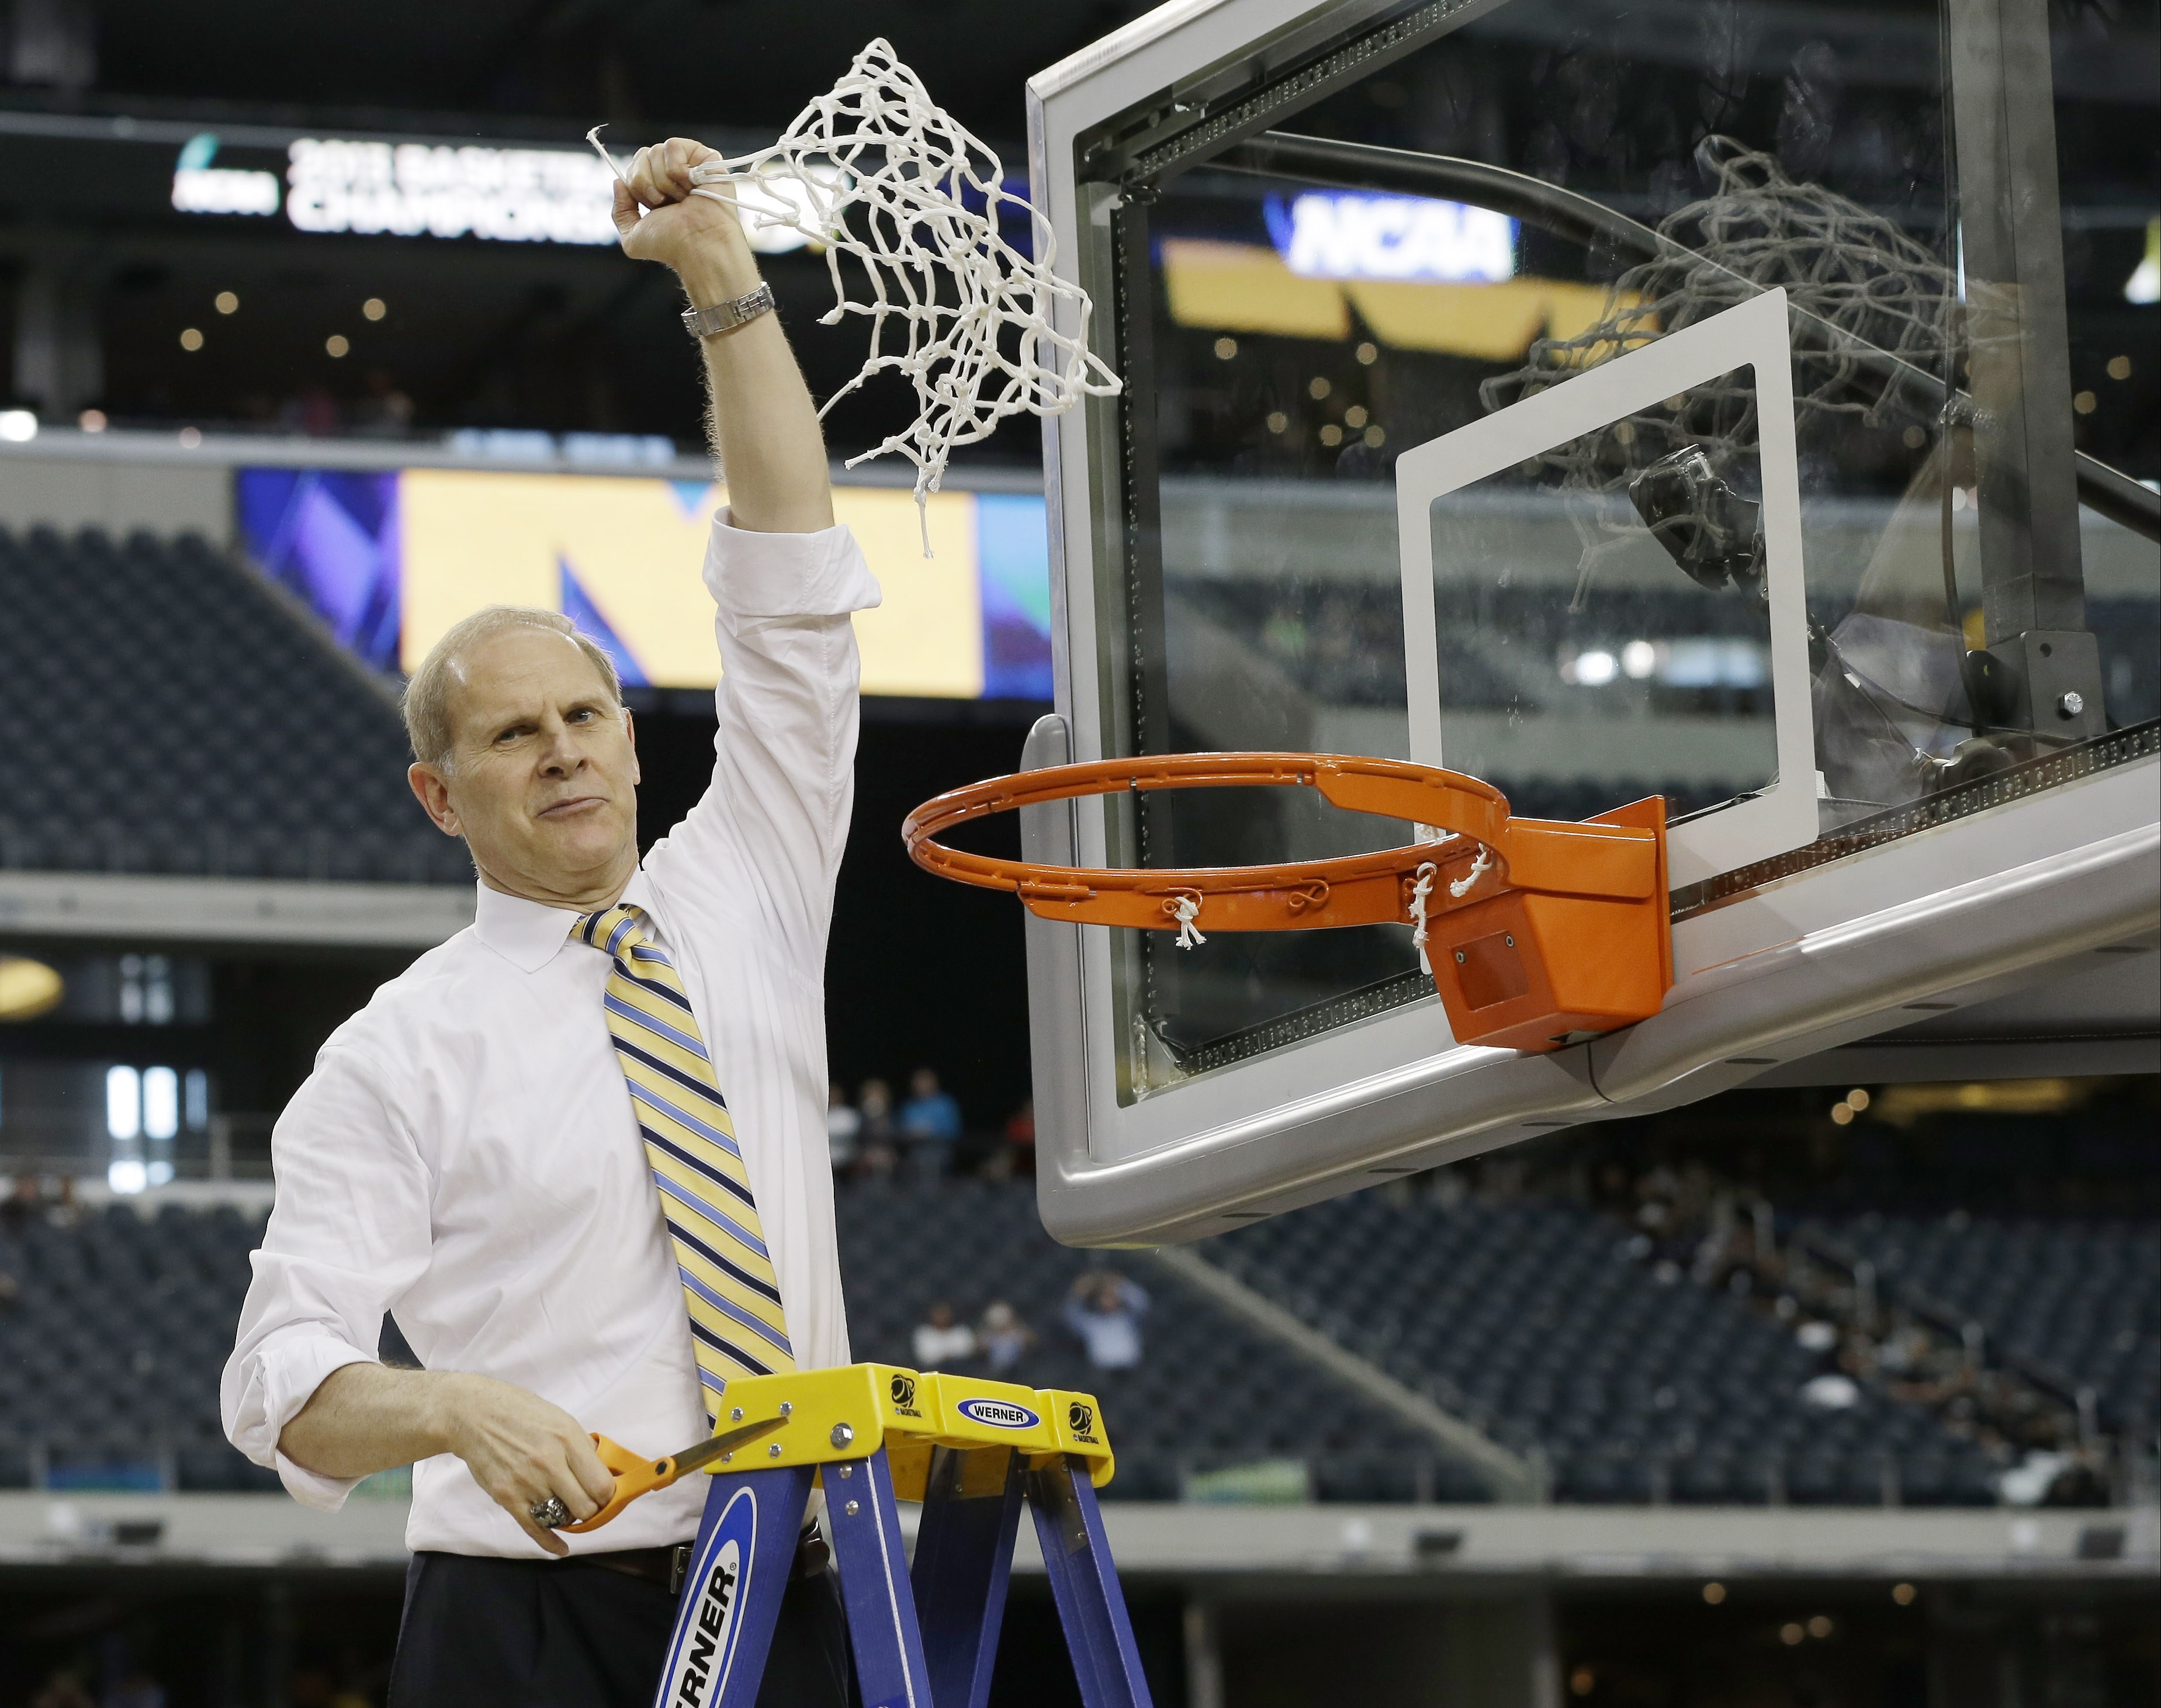 """""""It's important that DeSales is able to bring back the alums and raise money for what I think is a terrific cause, a terrific way to continue Catholic education in that area.""""   – DeSales alumnus John Beilein, basketball coach at University of Michigan"""